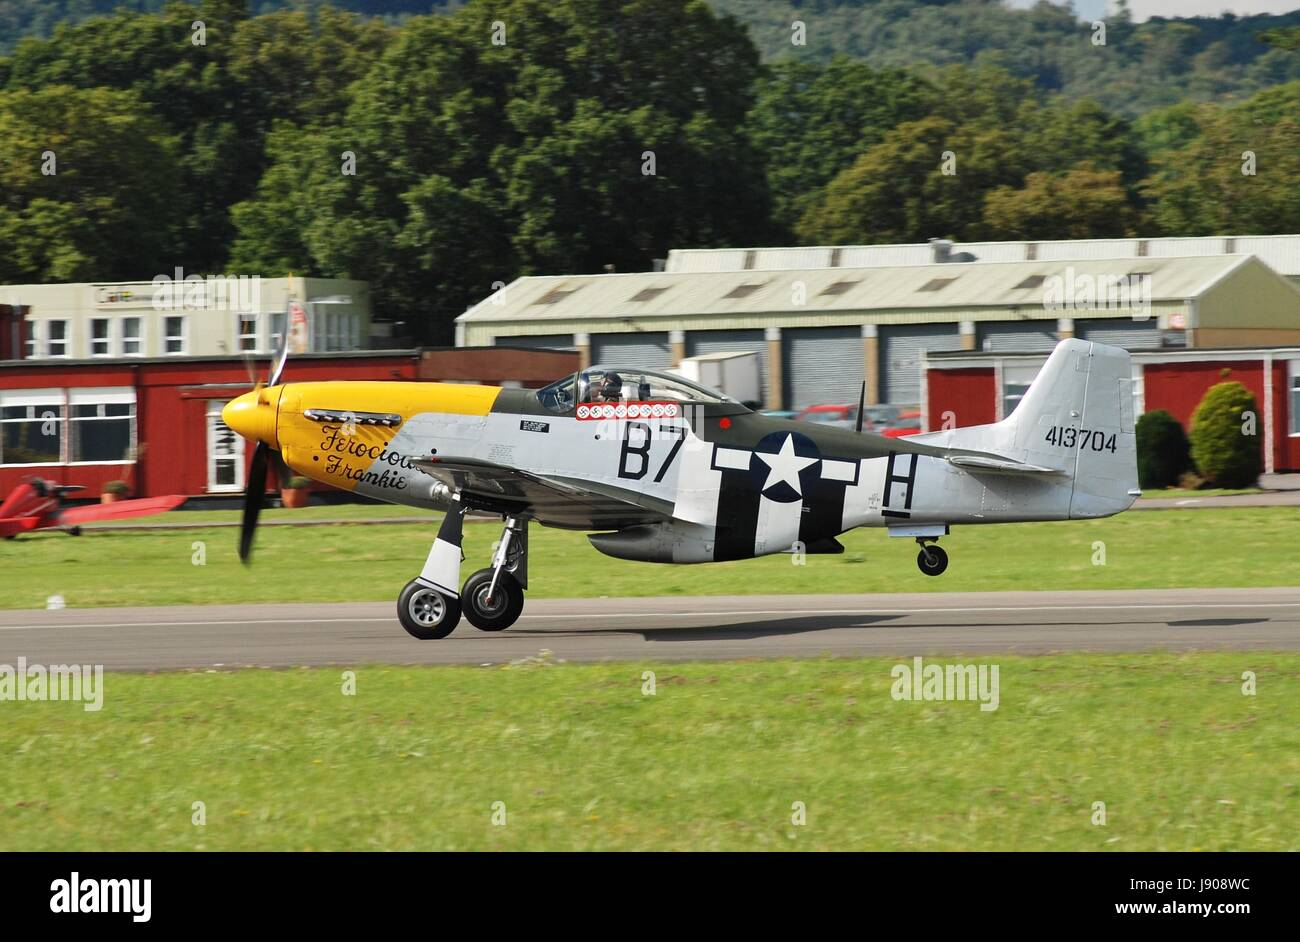 P-51D Mustang fighter Ferocious Frankie taking off during the Dunsfold airshow in Surrey, England on August 23, Stock Photo